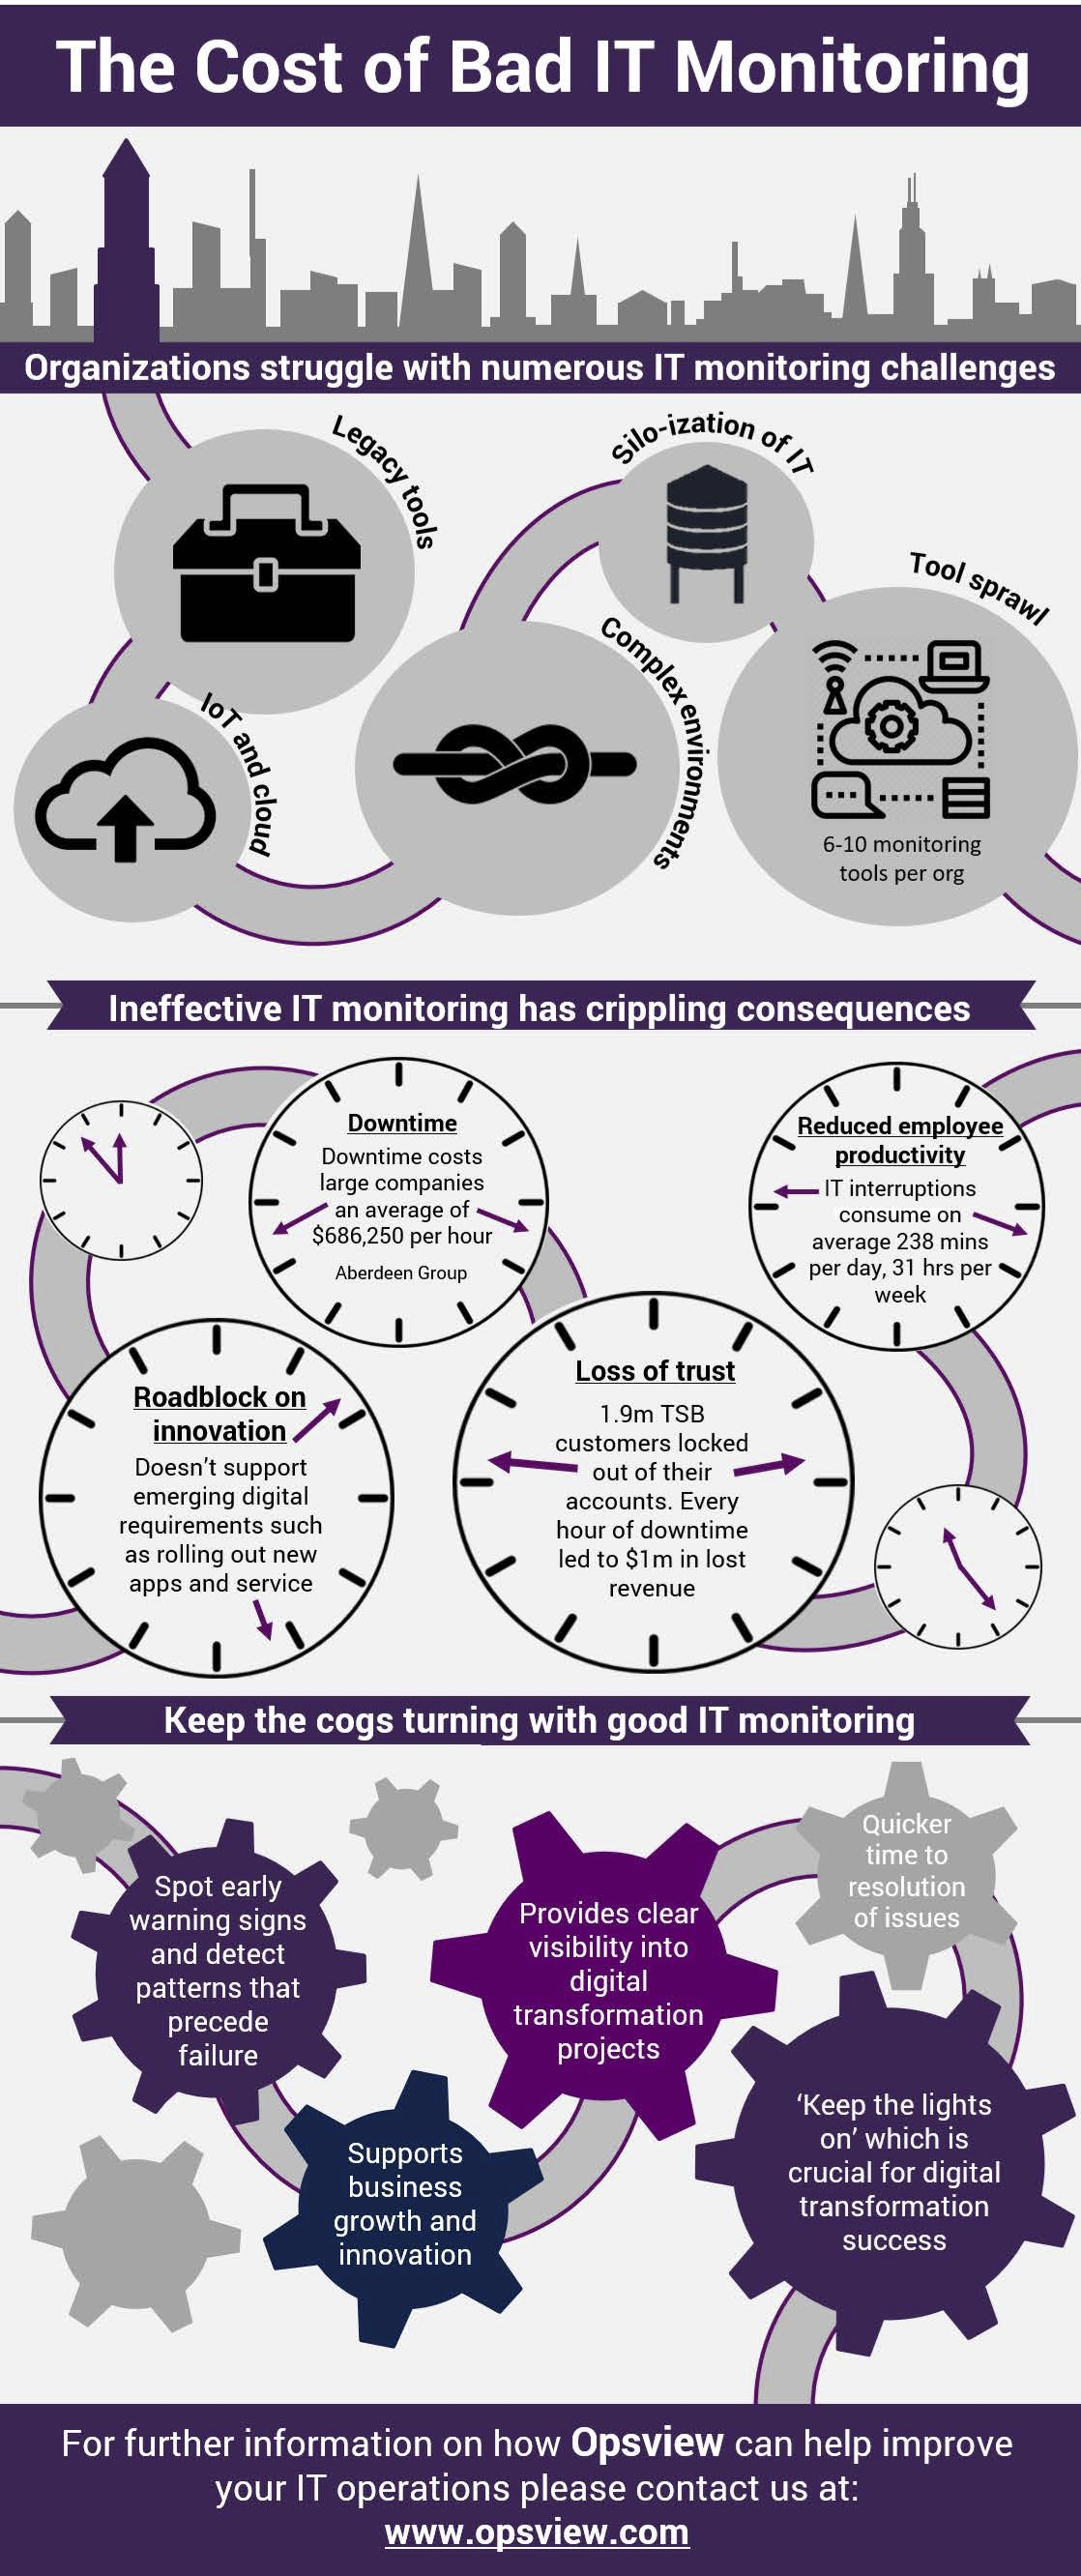 The Cost of Bad IT Monitoring Infographic